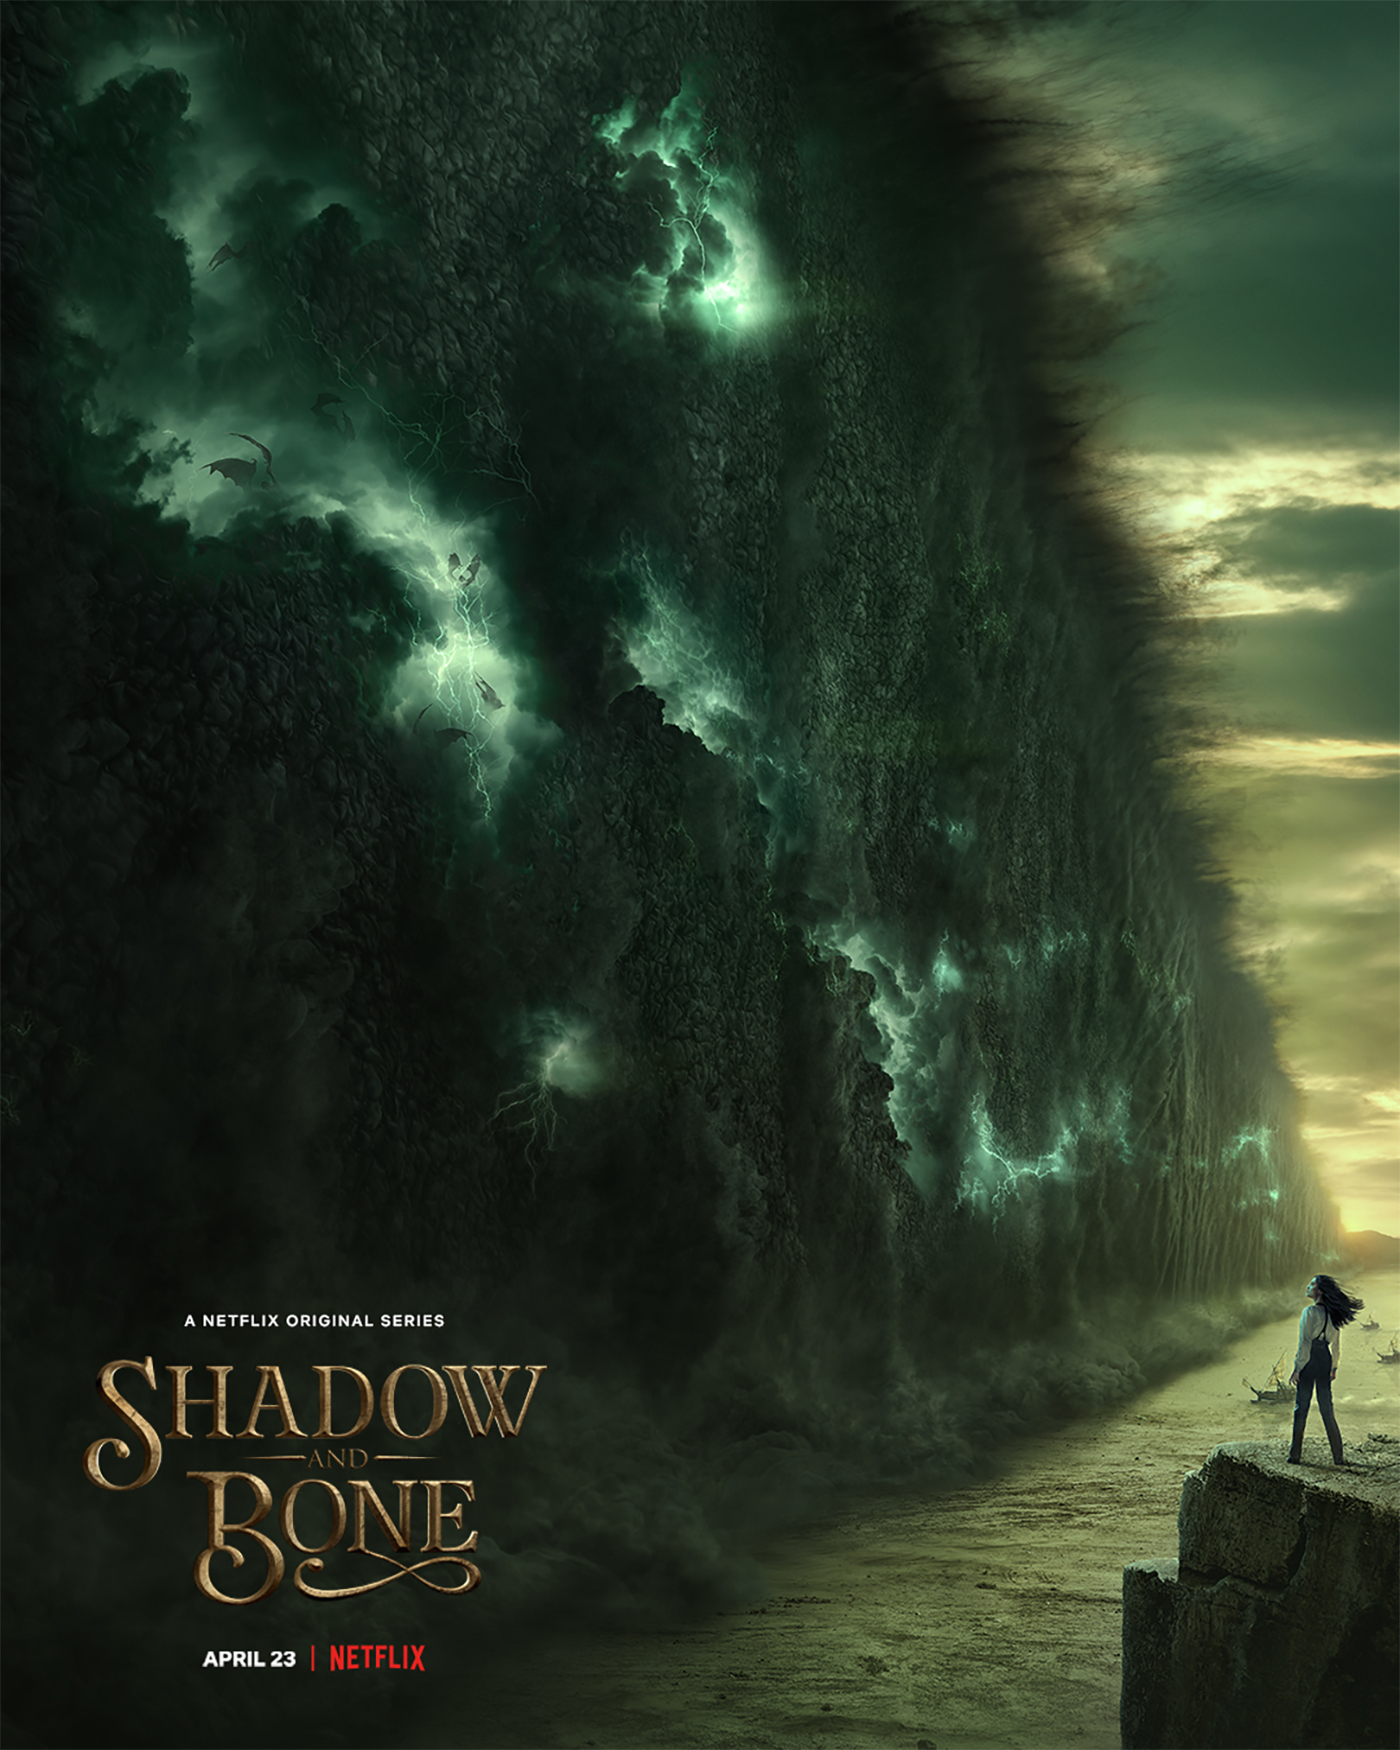 Netflix's Shadow and Bone' finally has a full trailer - Bookstacked